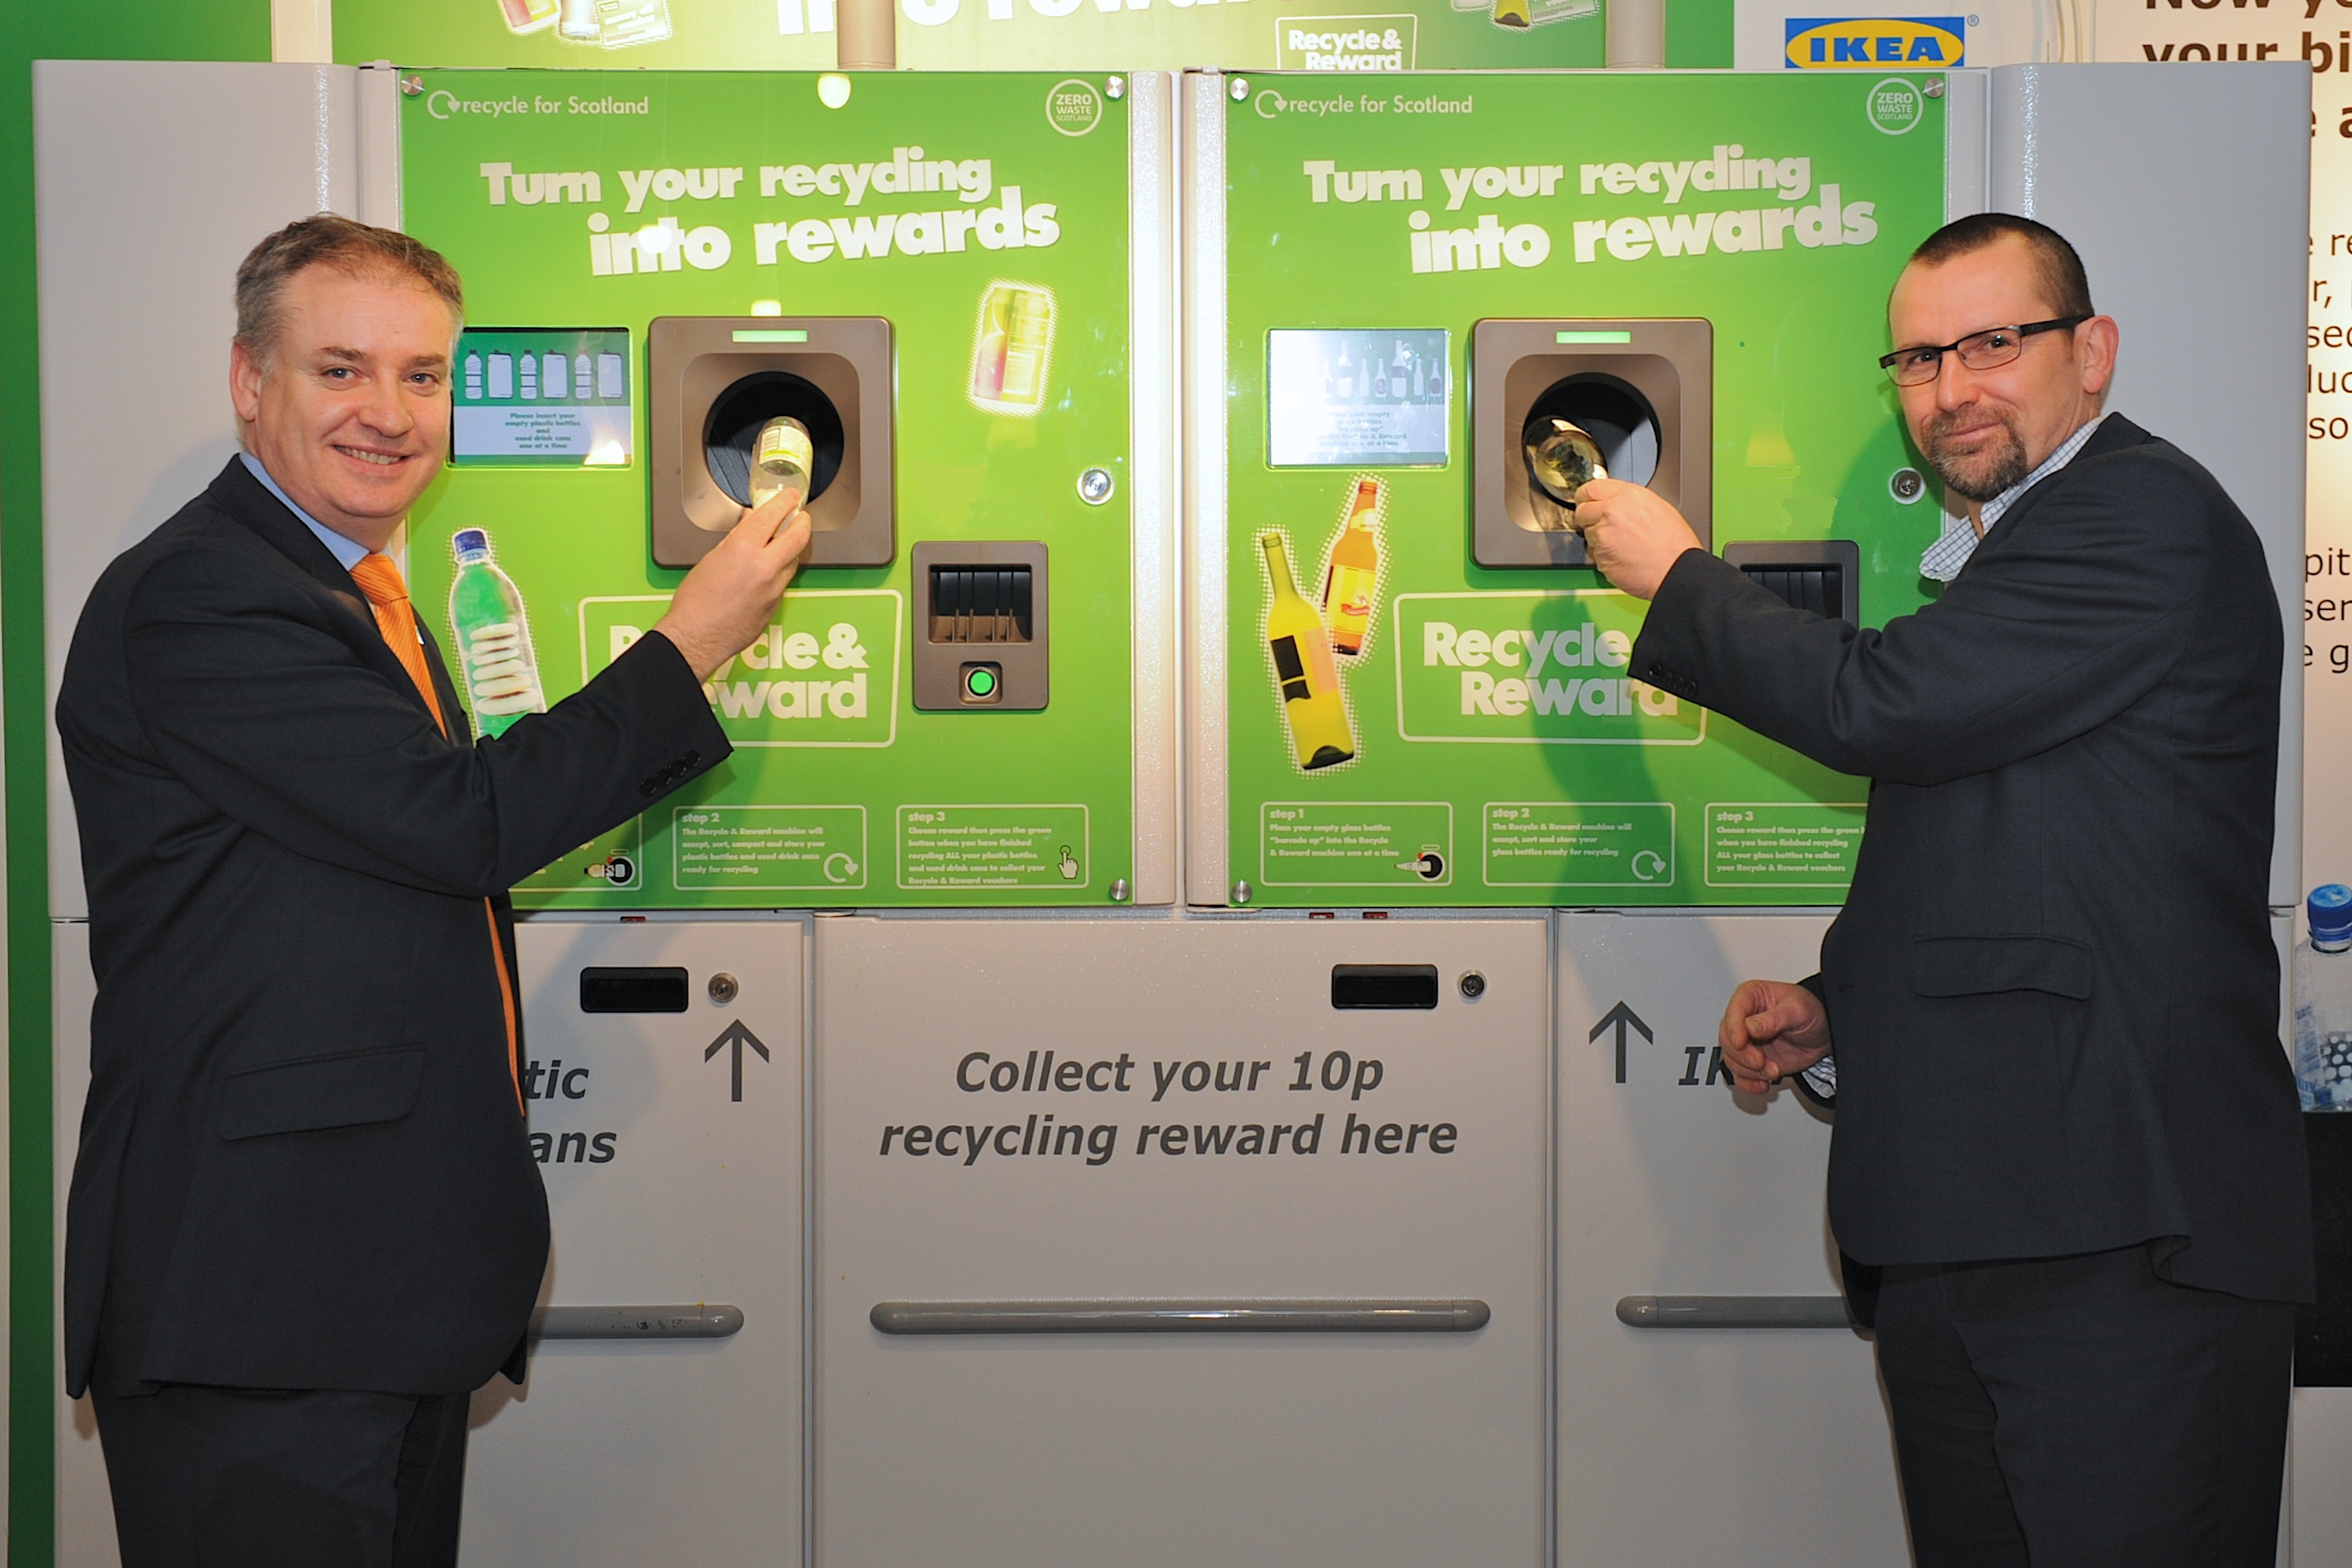 Recycle and Reward Scotland